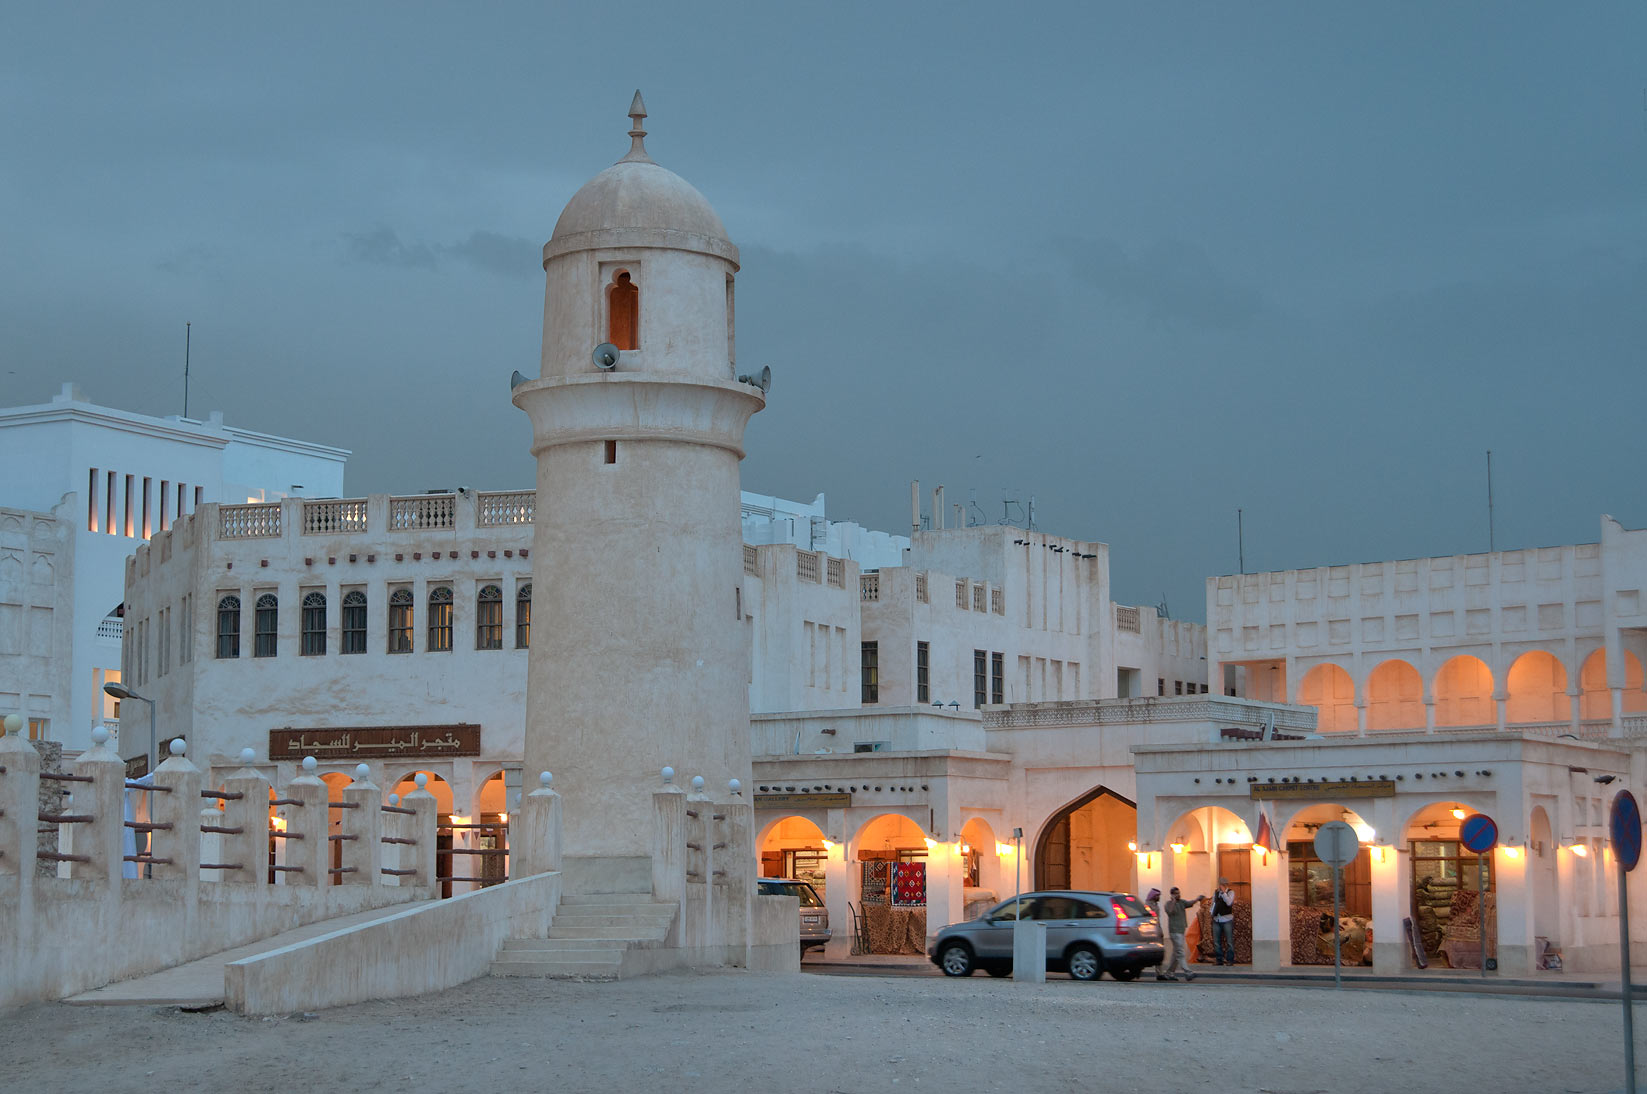 Souq Waqif Mosque, with approaching dust storm. Doha, Qatar